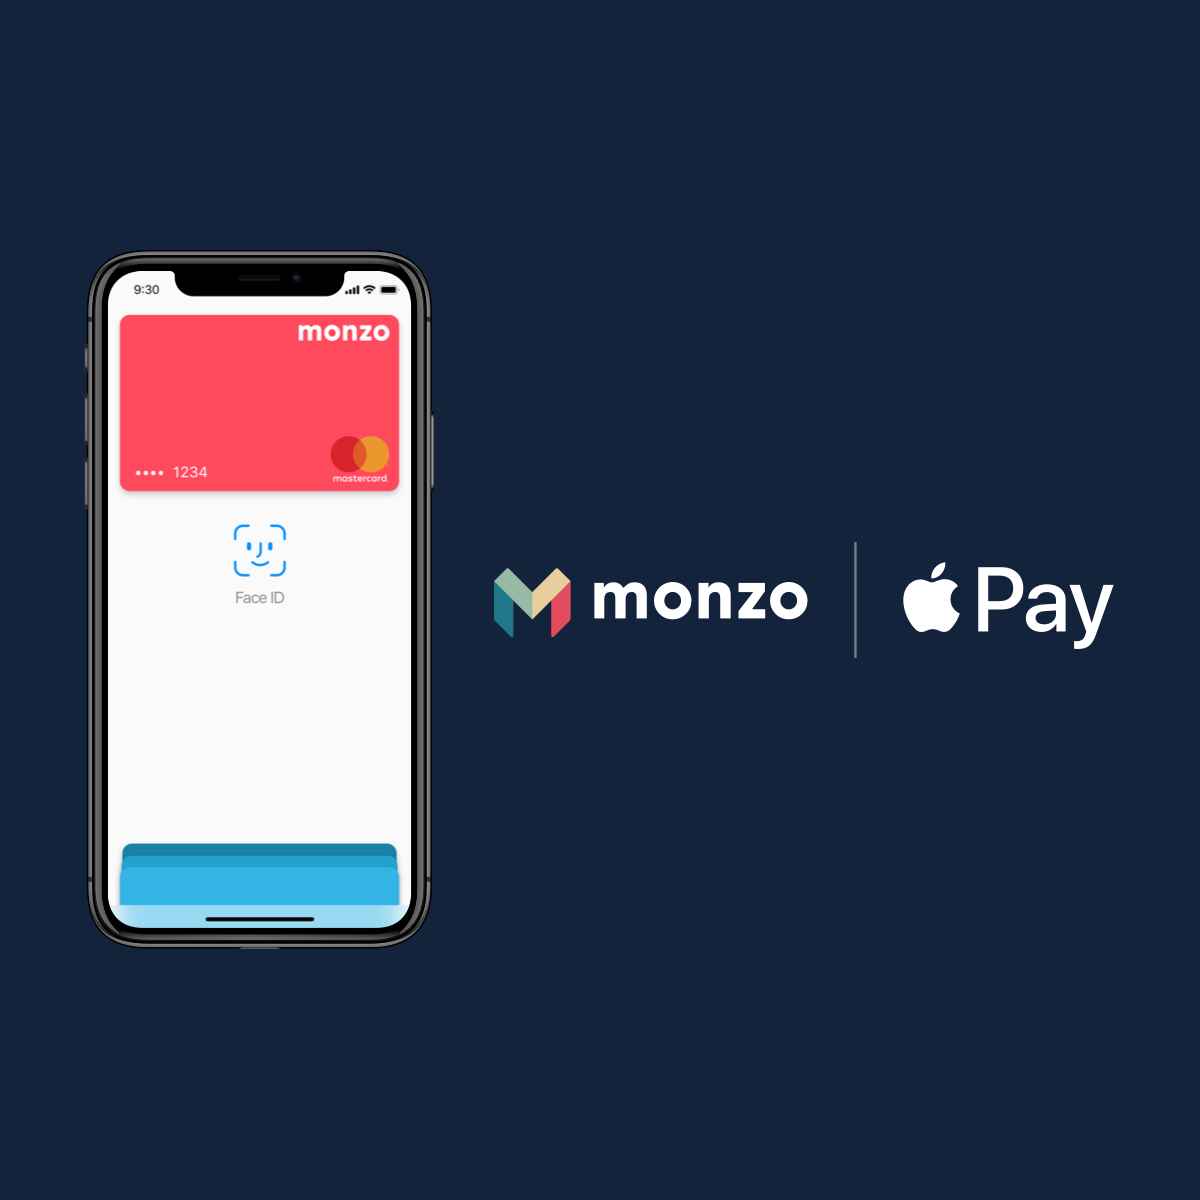 Apple Pay now supports Monzo to help you spend with your iPhone